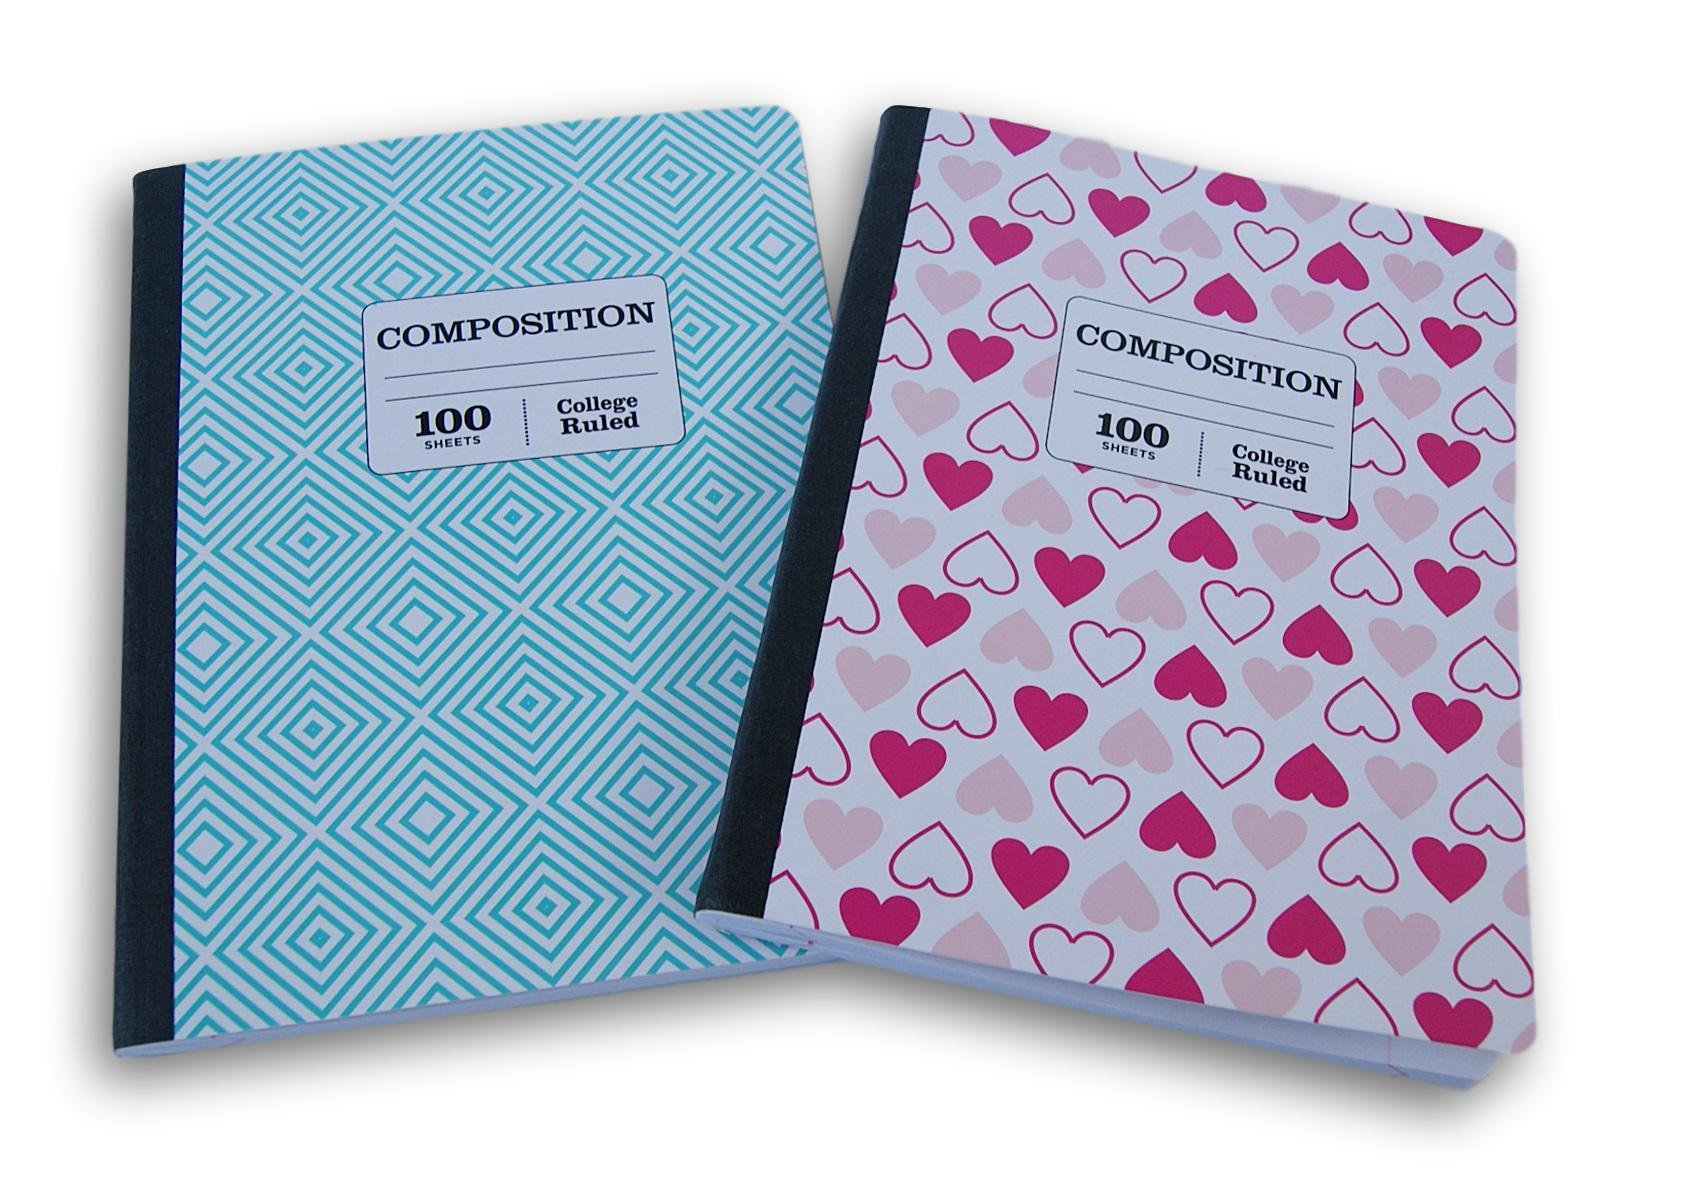 Hearts and Blue Triangles Patterned College Ruled 100 Sheets Composition Notebooks - (Pack of 2) by JOT